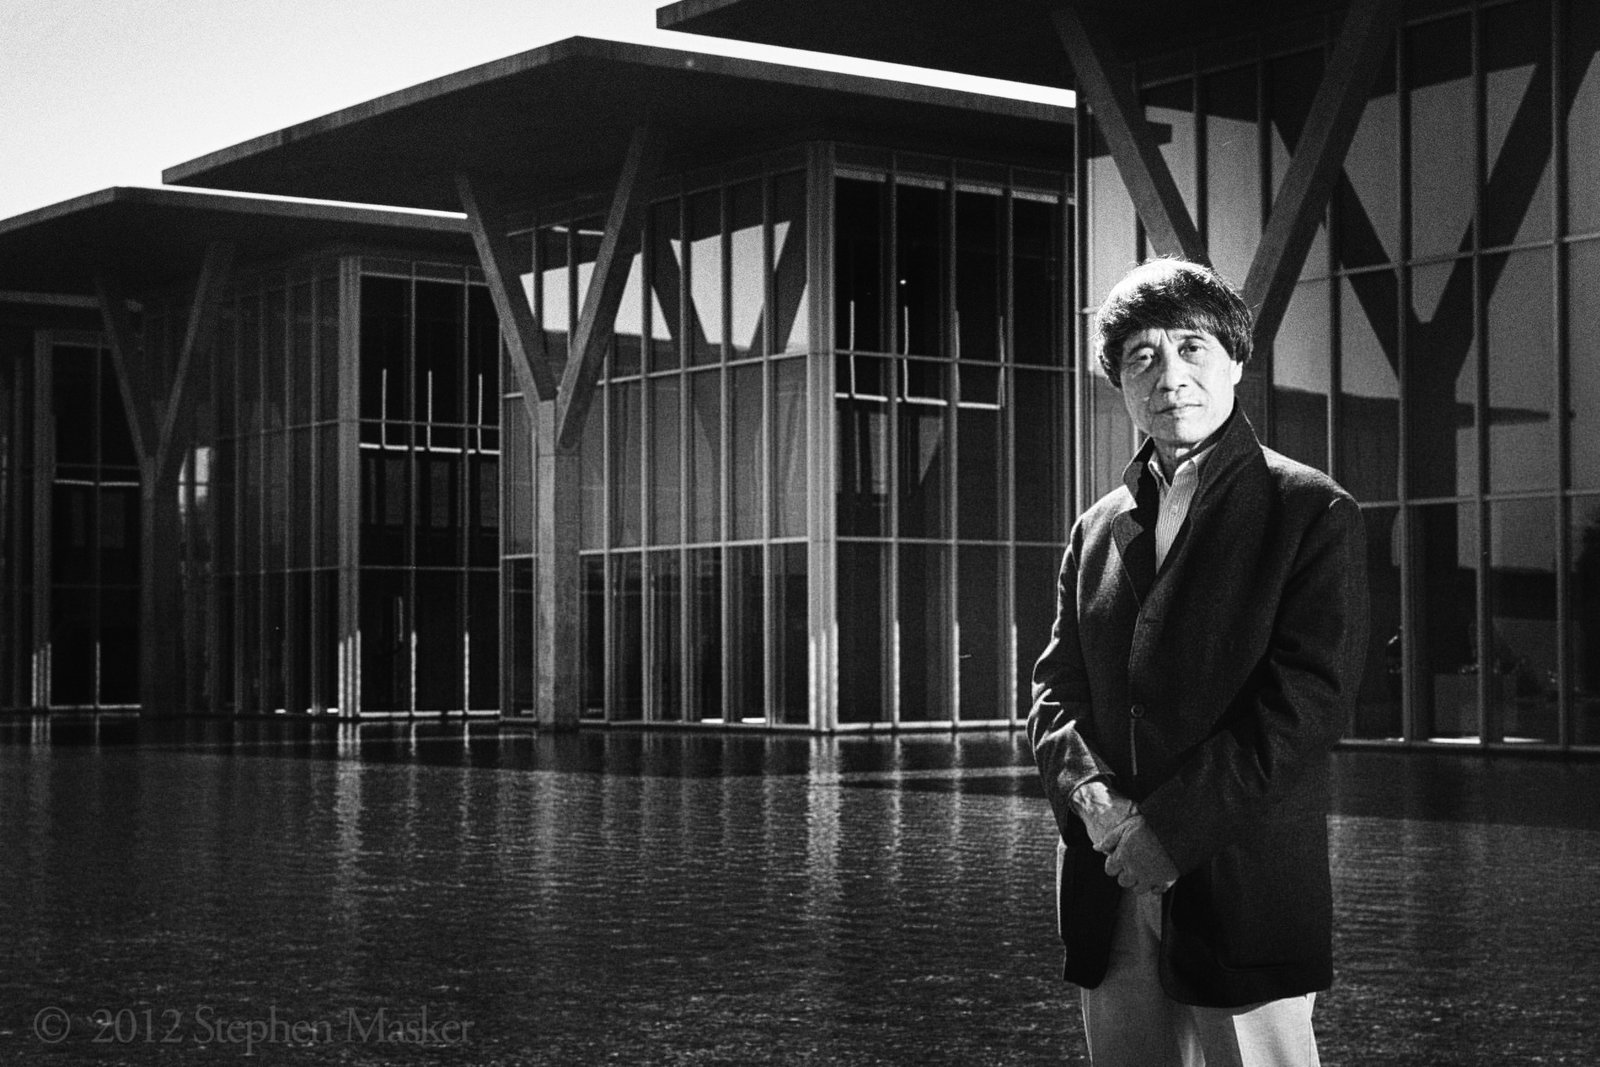 Japanese architect Tadao Ando stands in front of the The Modern, a structure he designed as a public art gallery in the Cultural District of downtown Fort Worth, Texas on Saturday, October 20, 2012.  Photo Stephen Masker  Photo 25 of 28 in Here's How to Pronounce the Names of 28 Famous Designers and Architects from portraits